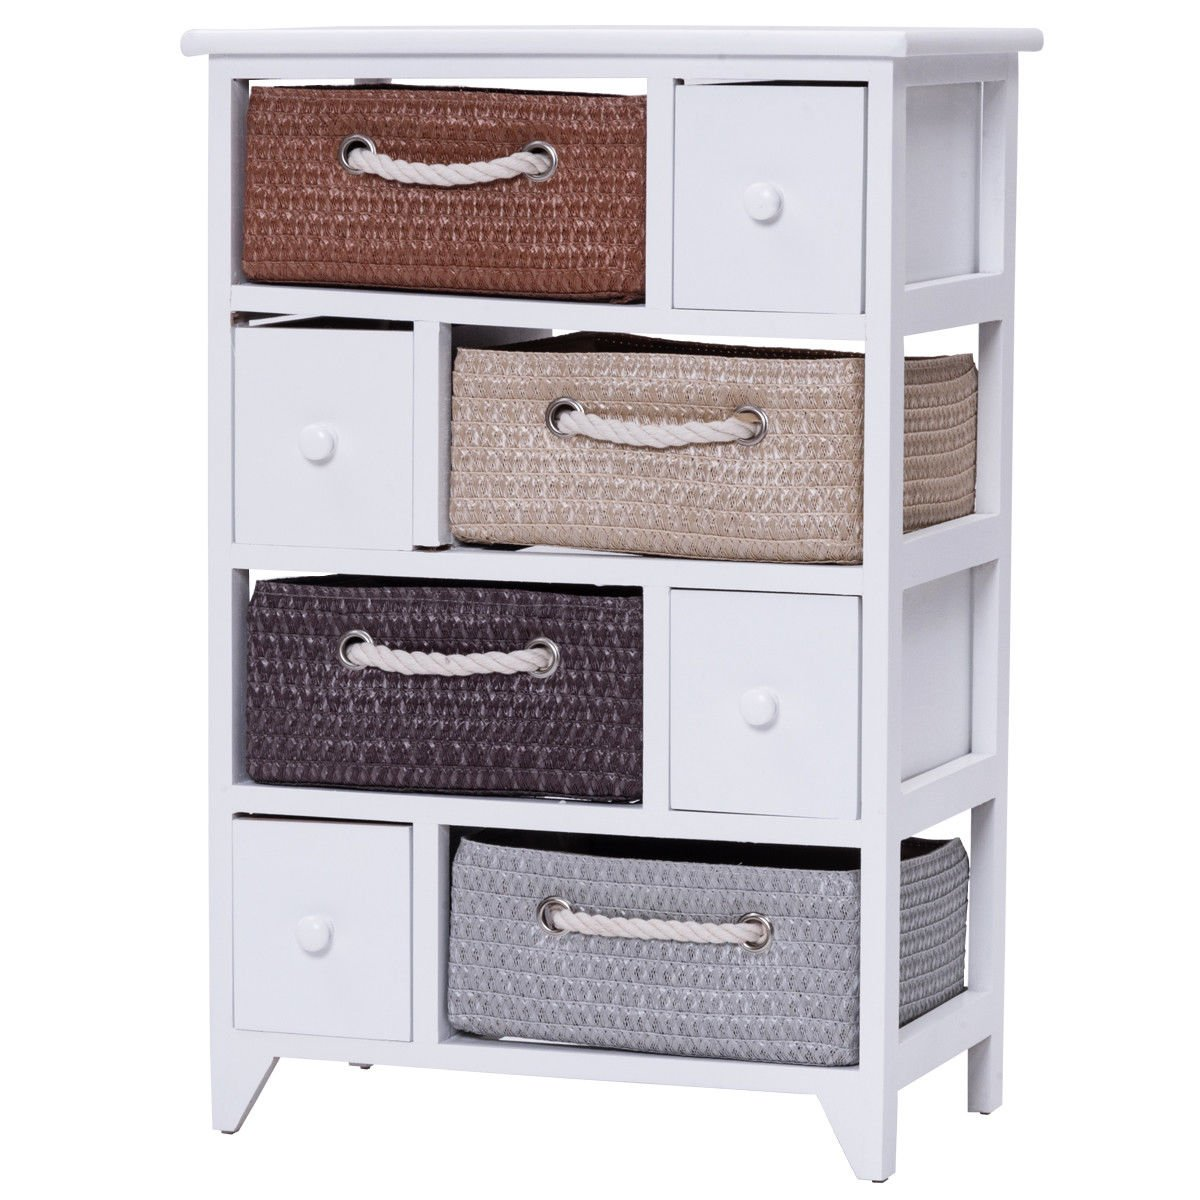 Moon Daughter 4 Drawer 4 Woven Basket Bathroom Storage Unit Rack Shelf Chest Cabinet Wood Frame White